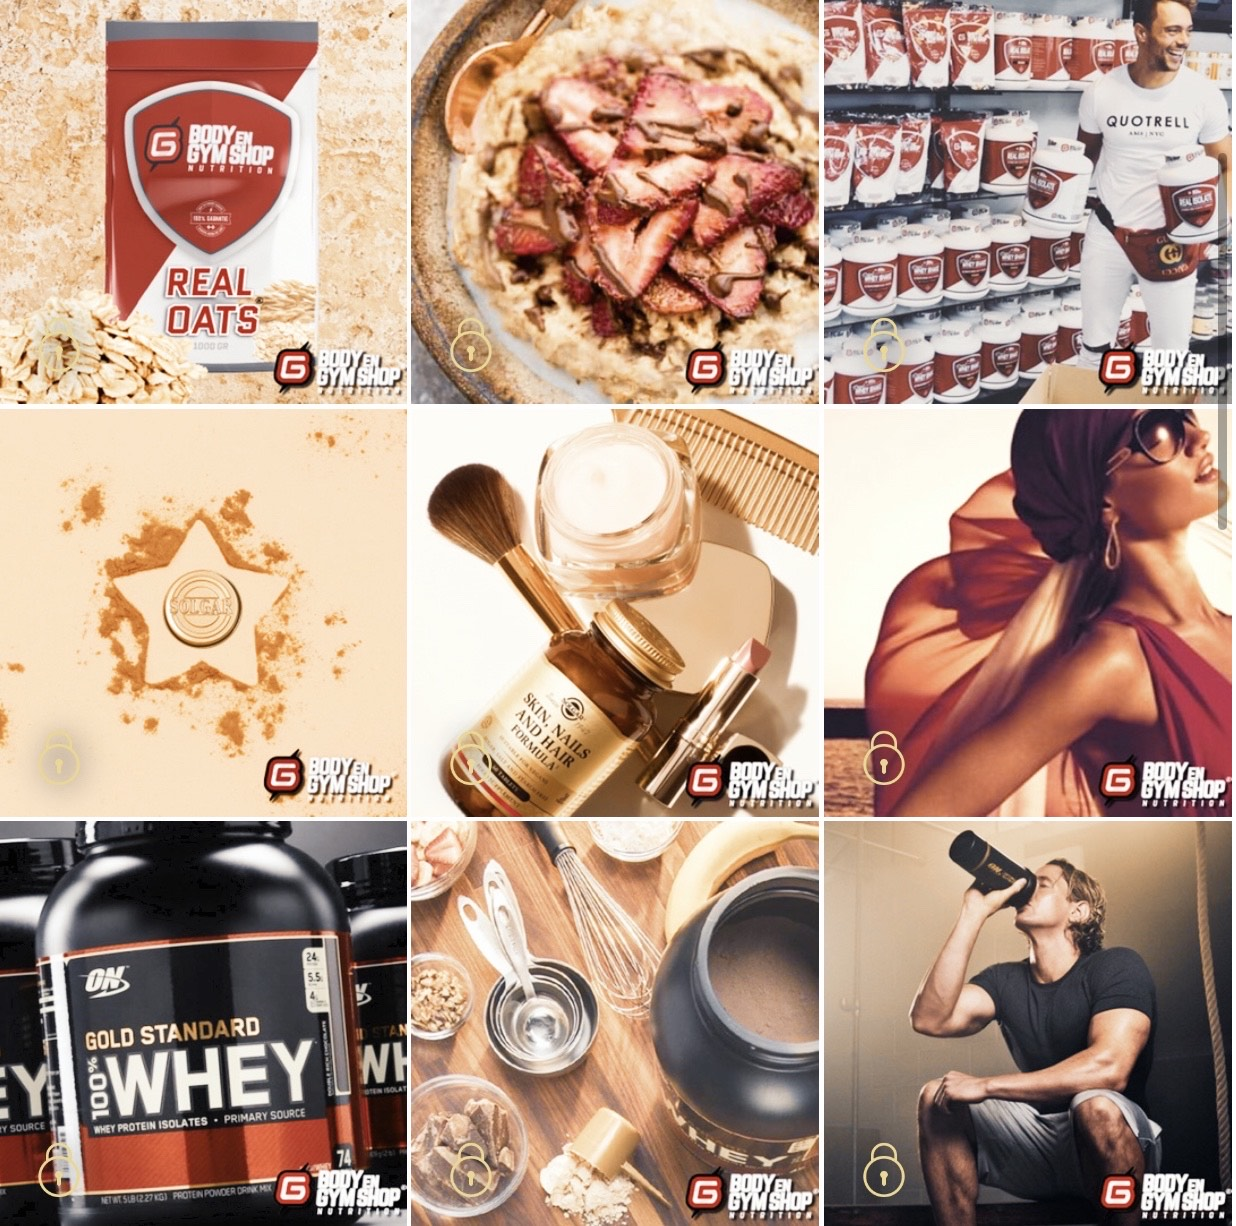 Instagram Feed Body Gym Shop